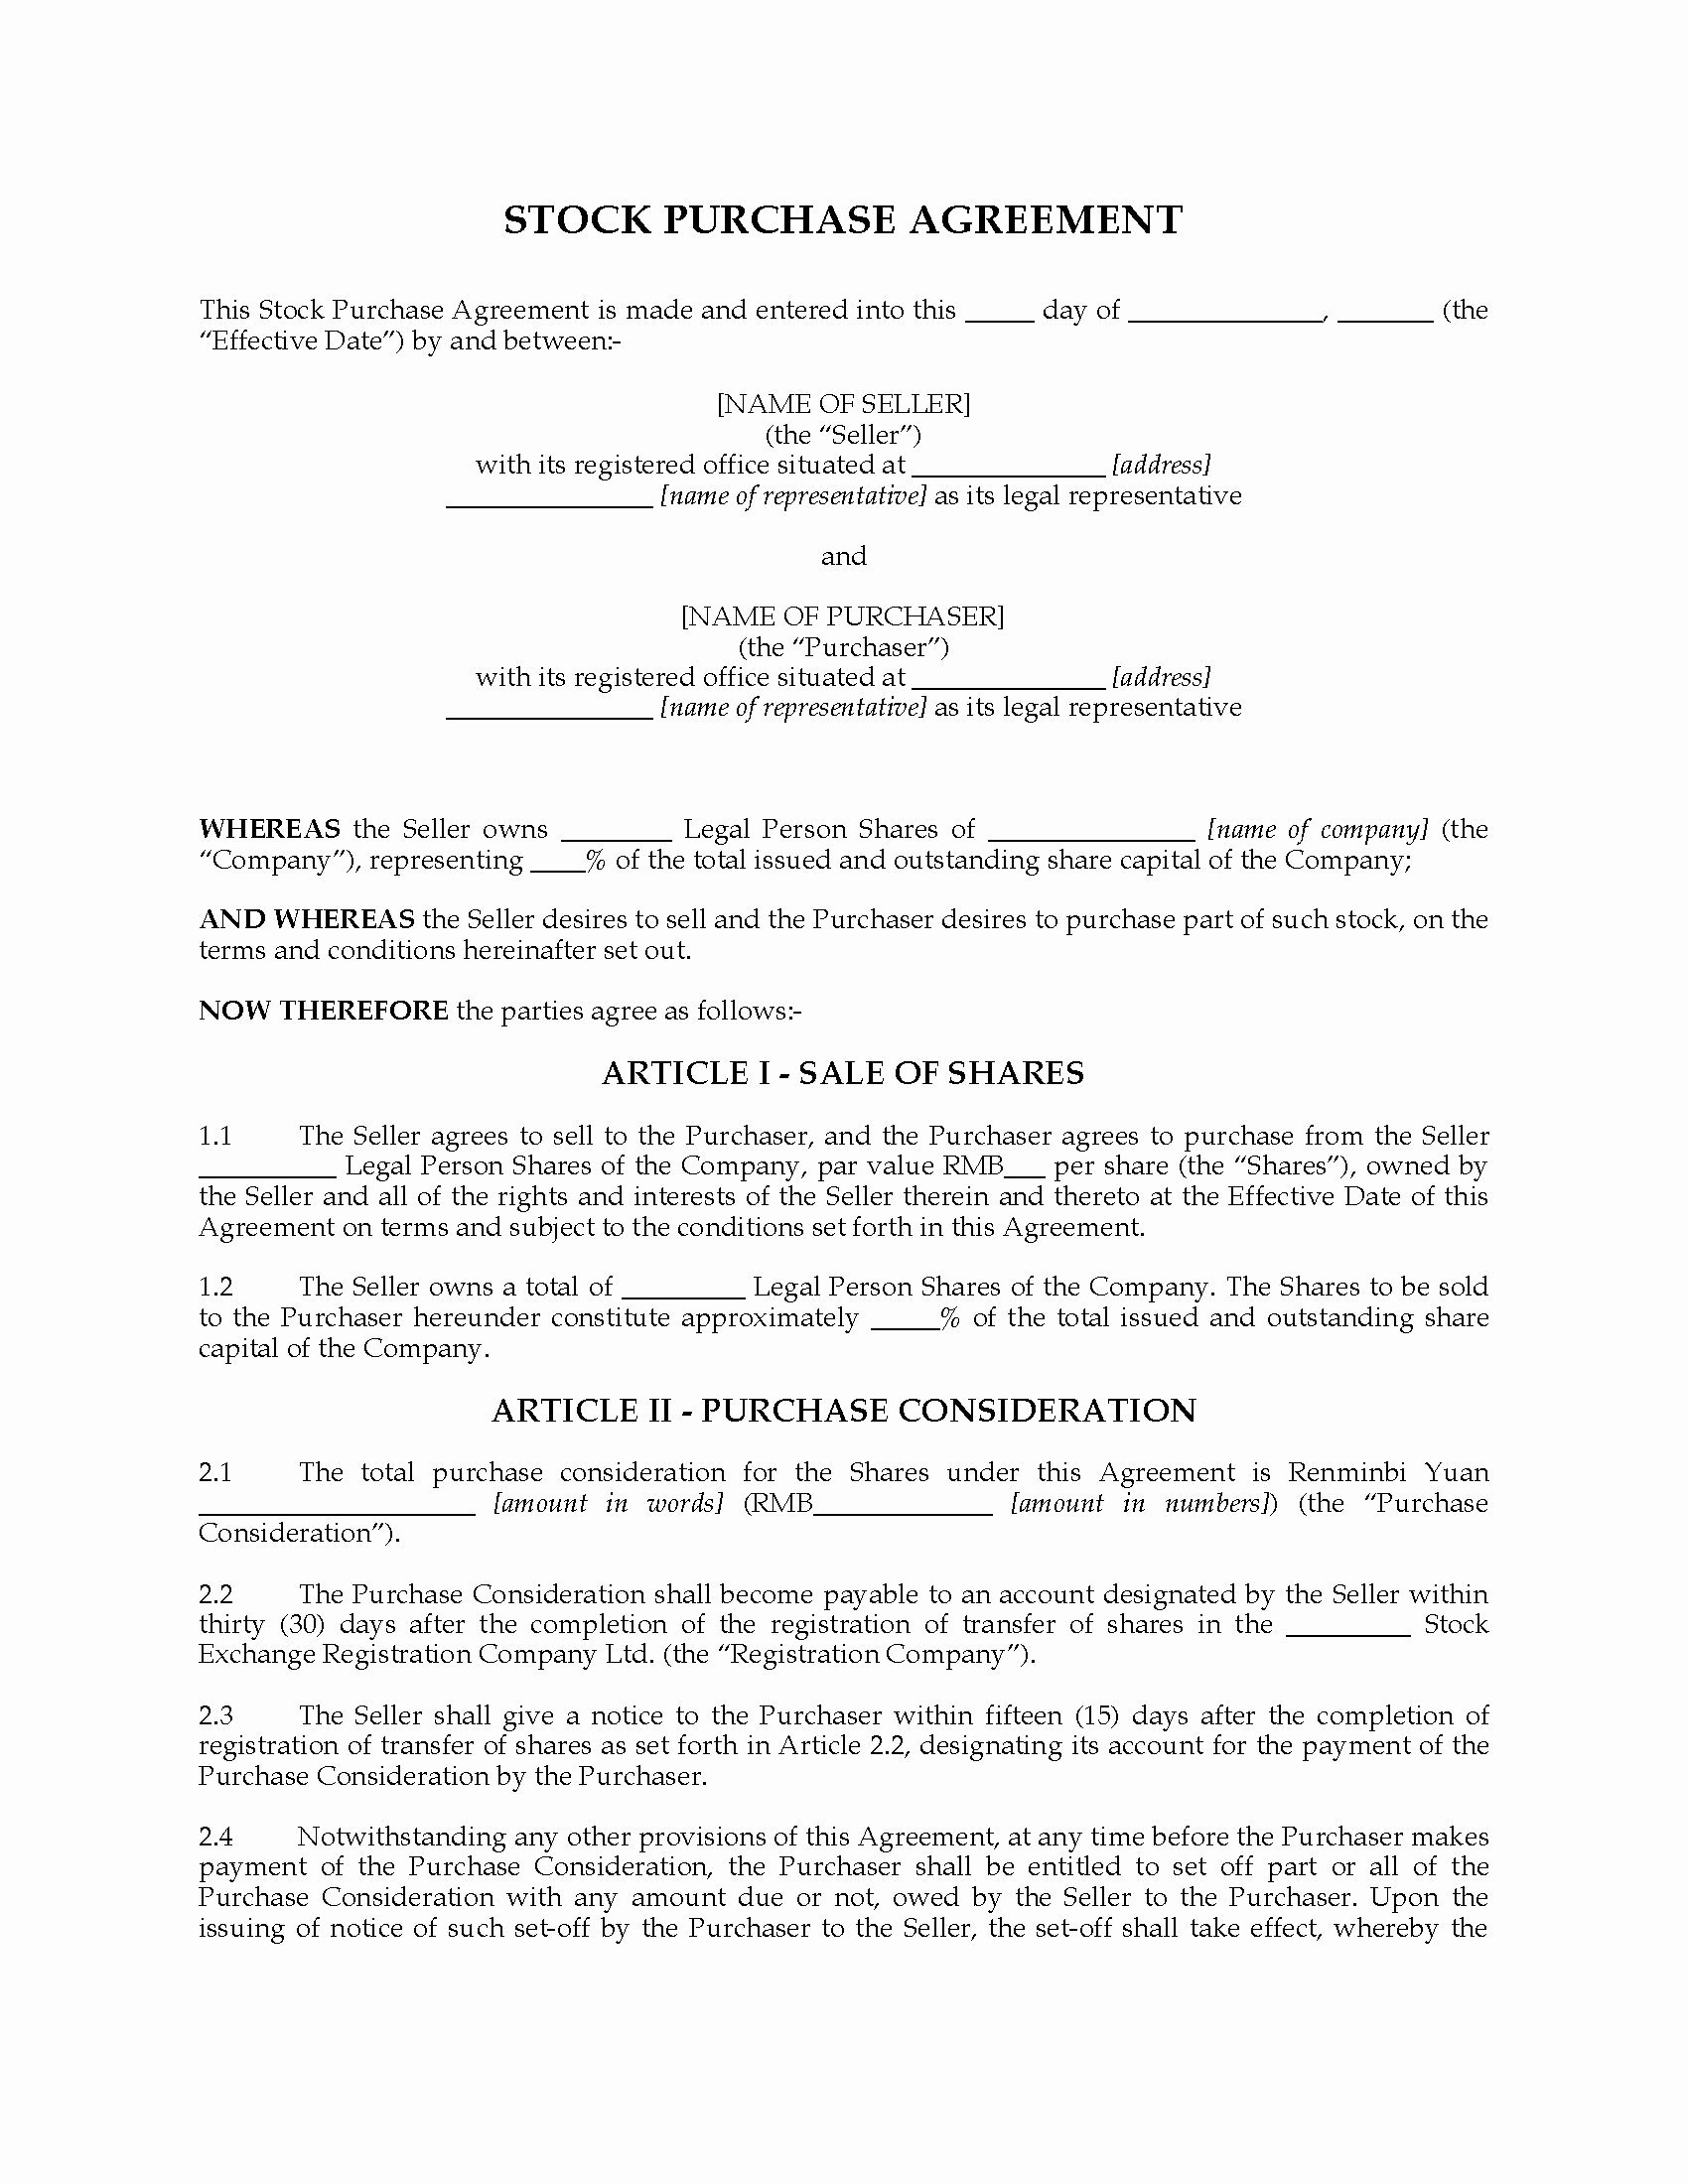 Share Purchase Agreement Template Luxury China Stock Purchase Agreement